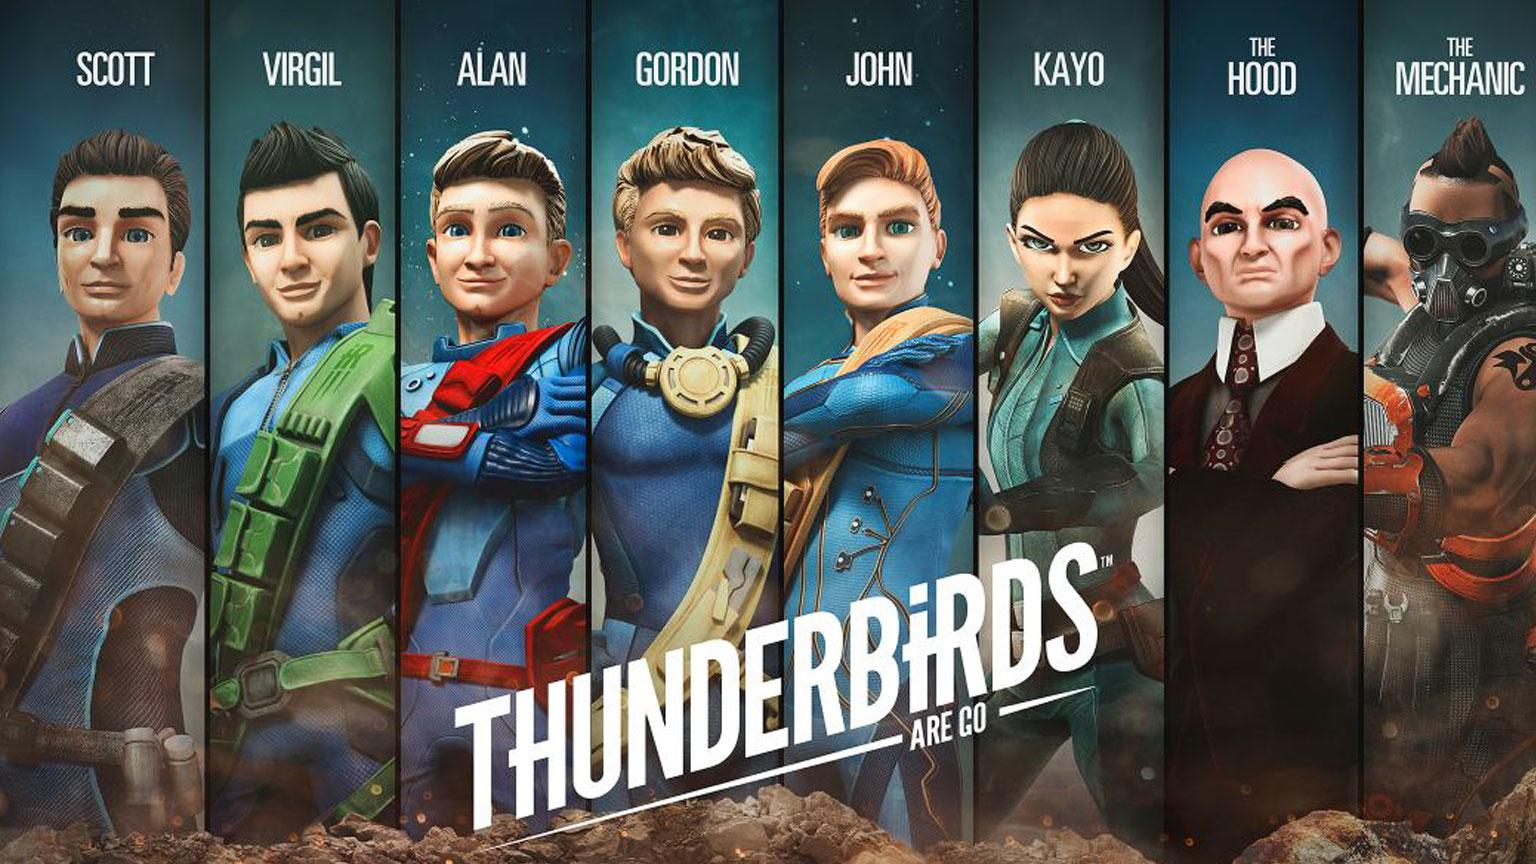 Thunderbirds are go - Staffel 2 Review Artikelbild